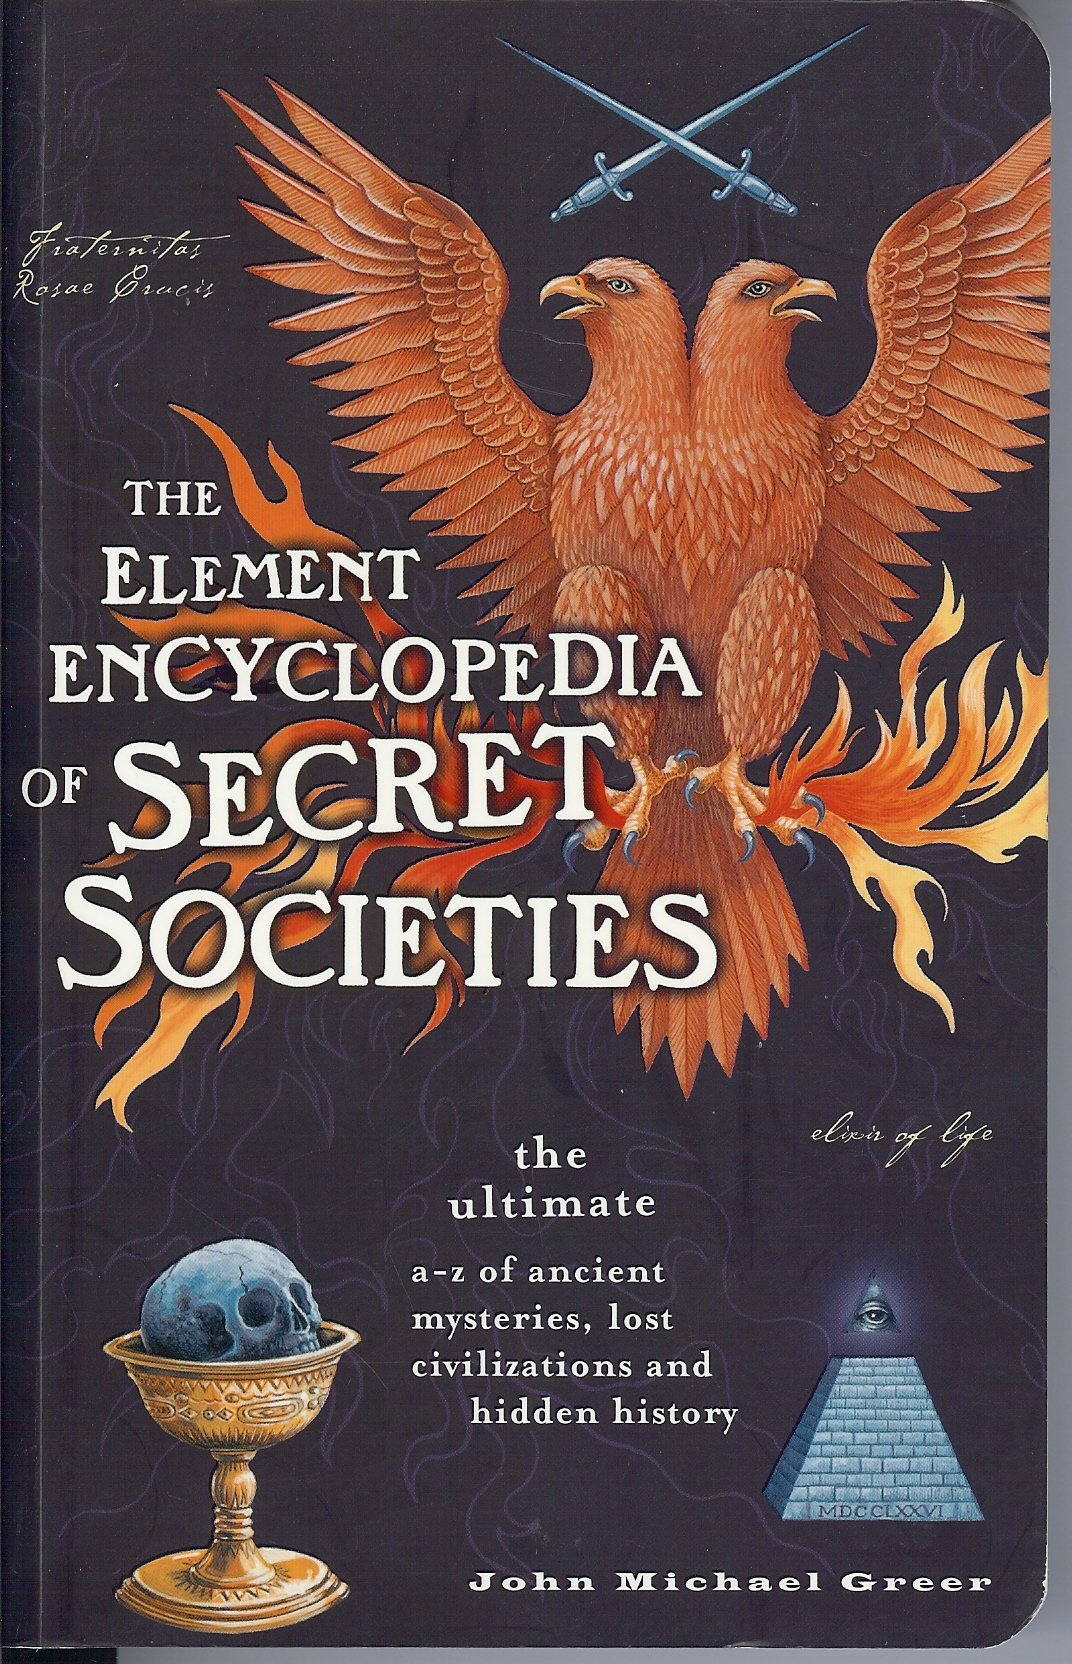 The Element Encyclopedia Of Secret Societies John Michael Greer